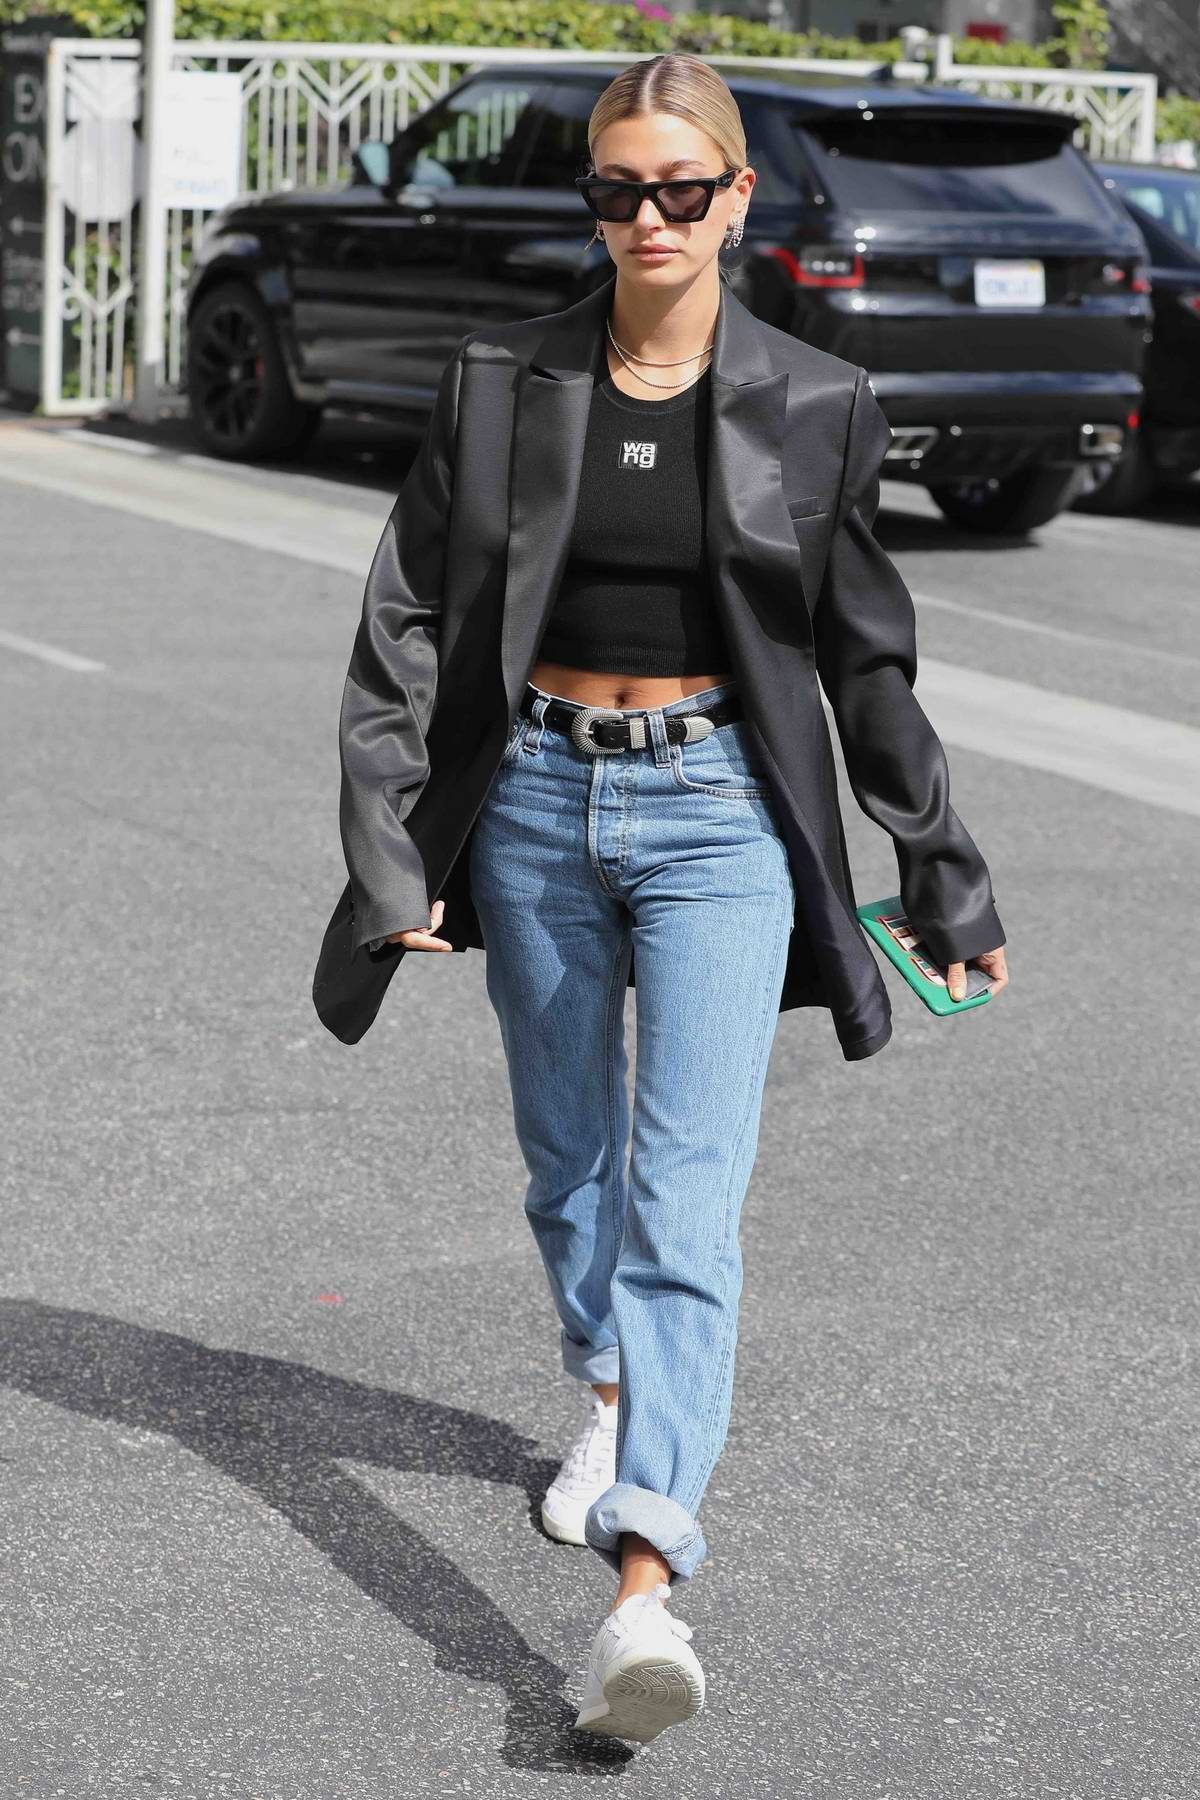 Hailey Baldwin is looking stylish in a black blazer and crop top as she runs some errands in Los Angeles